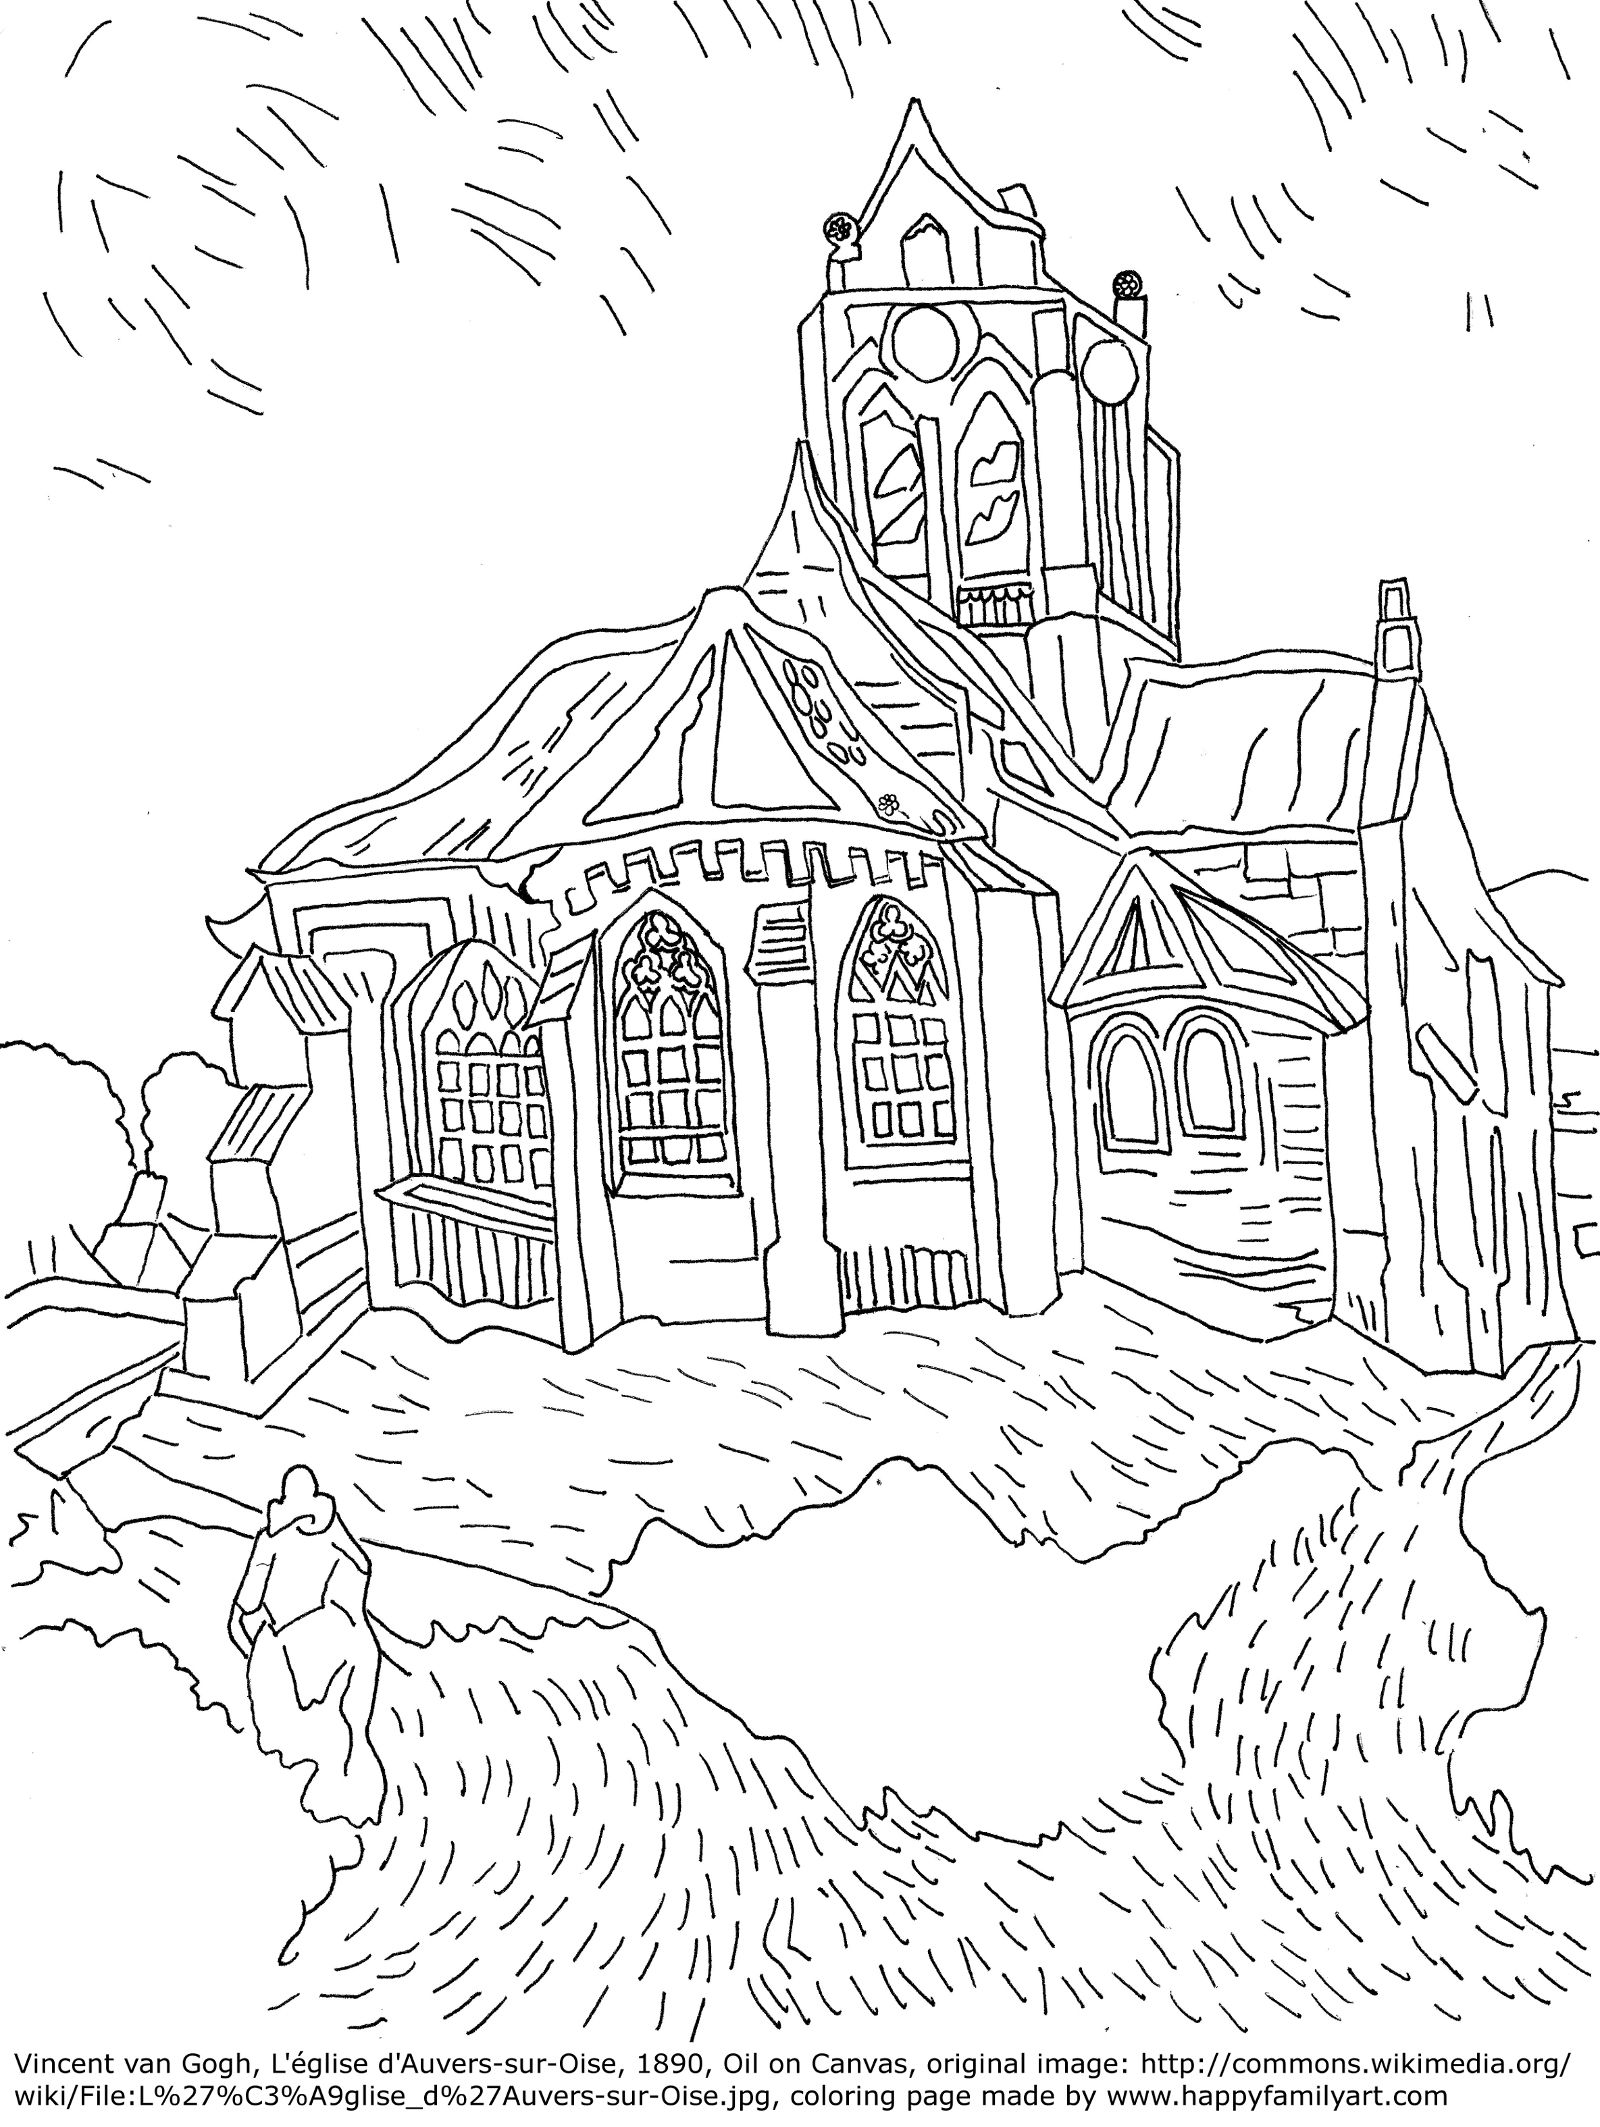 Famous Paintings Coloring Pages Please Make Sure To Know That All Of These Coloring Pages Are